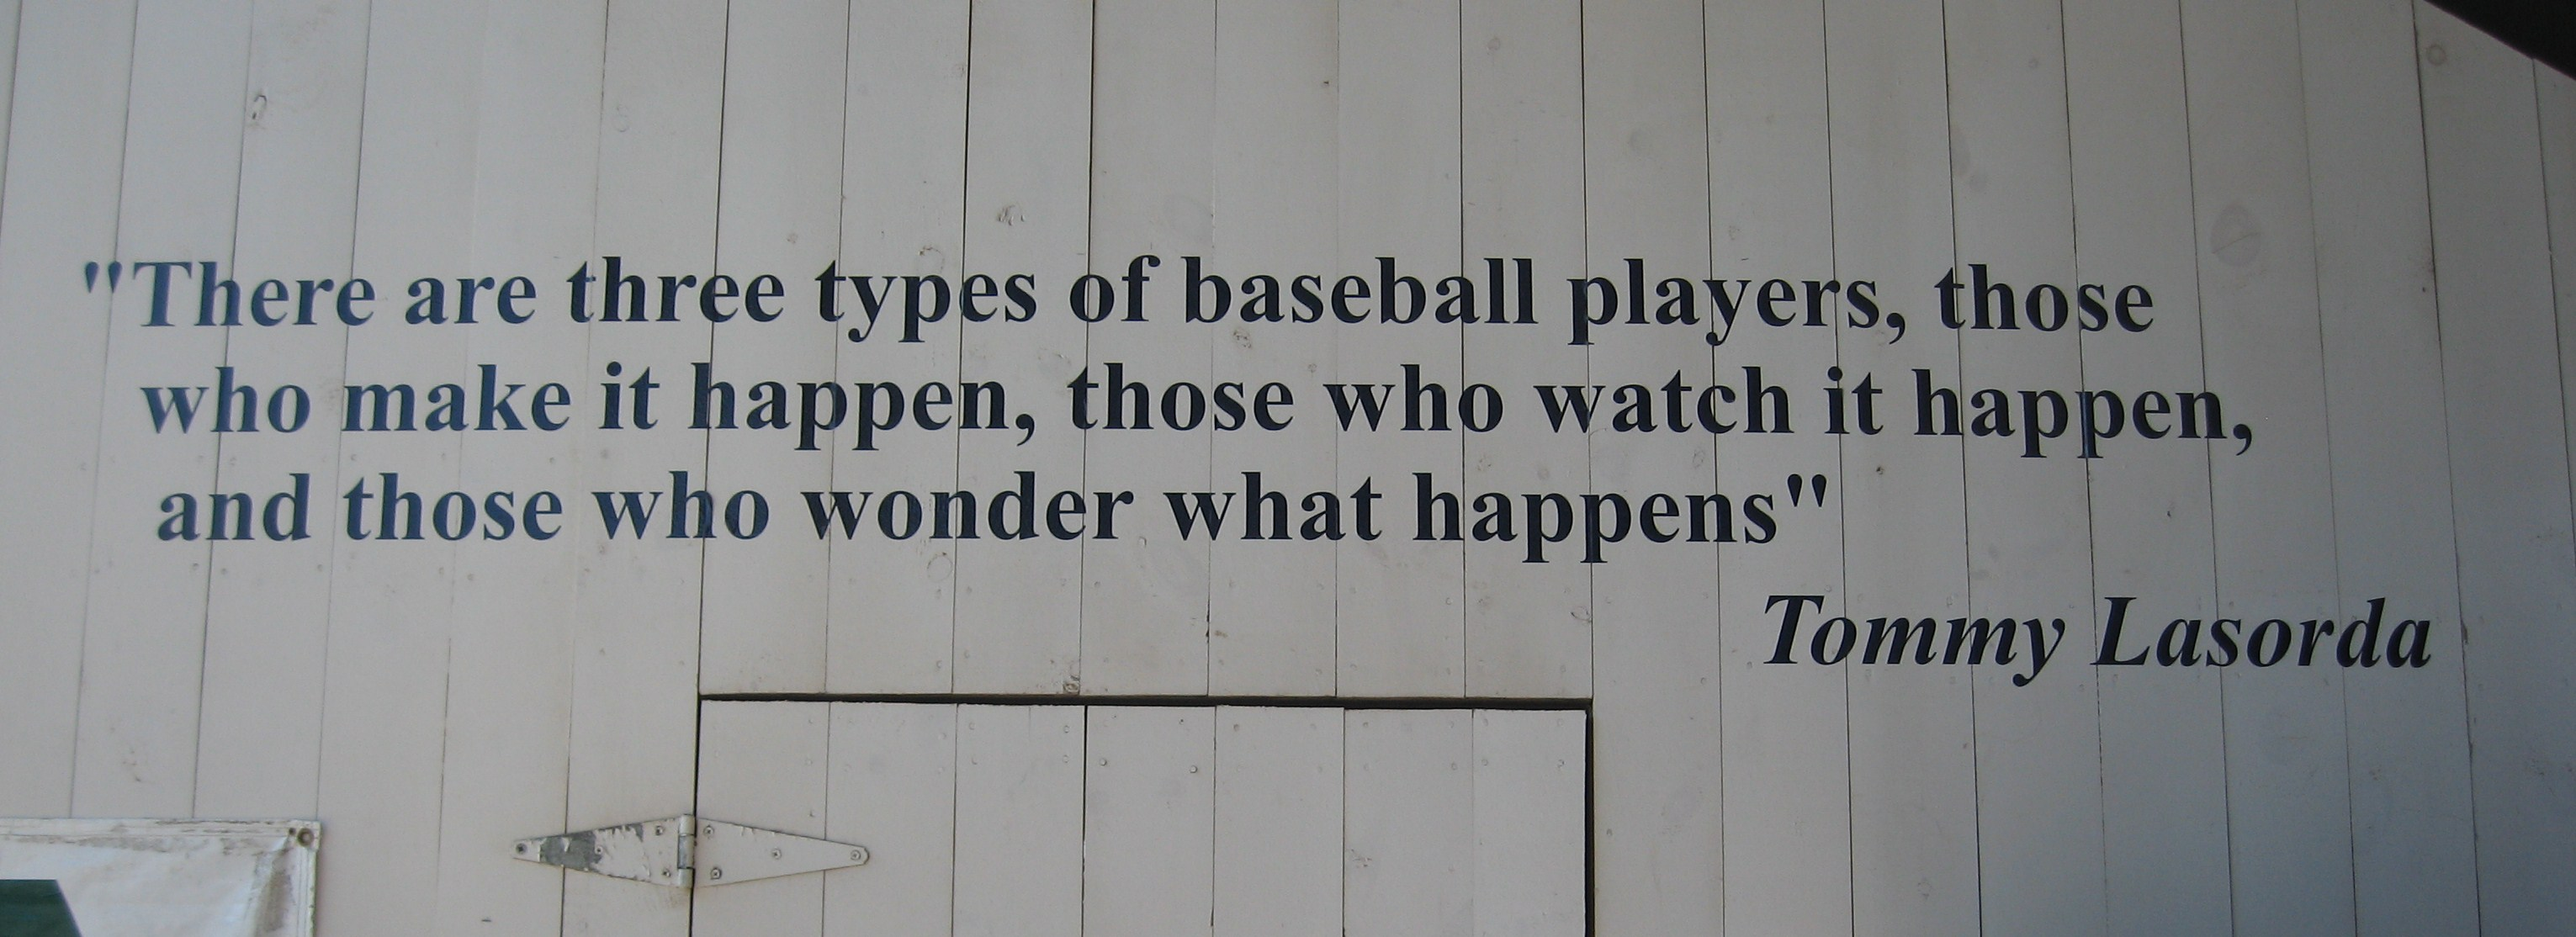 Tommy Lasorda's quote #5